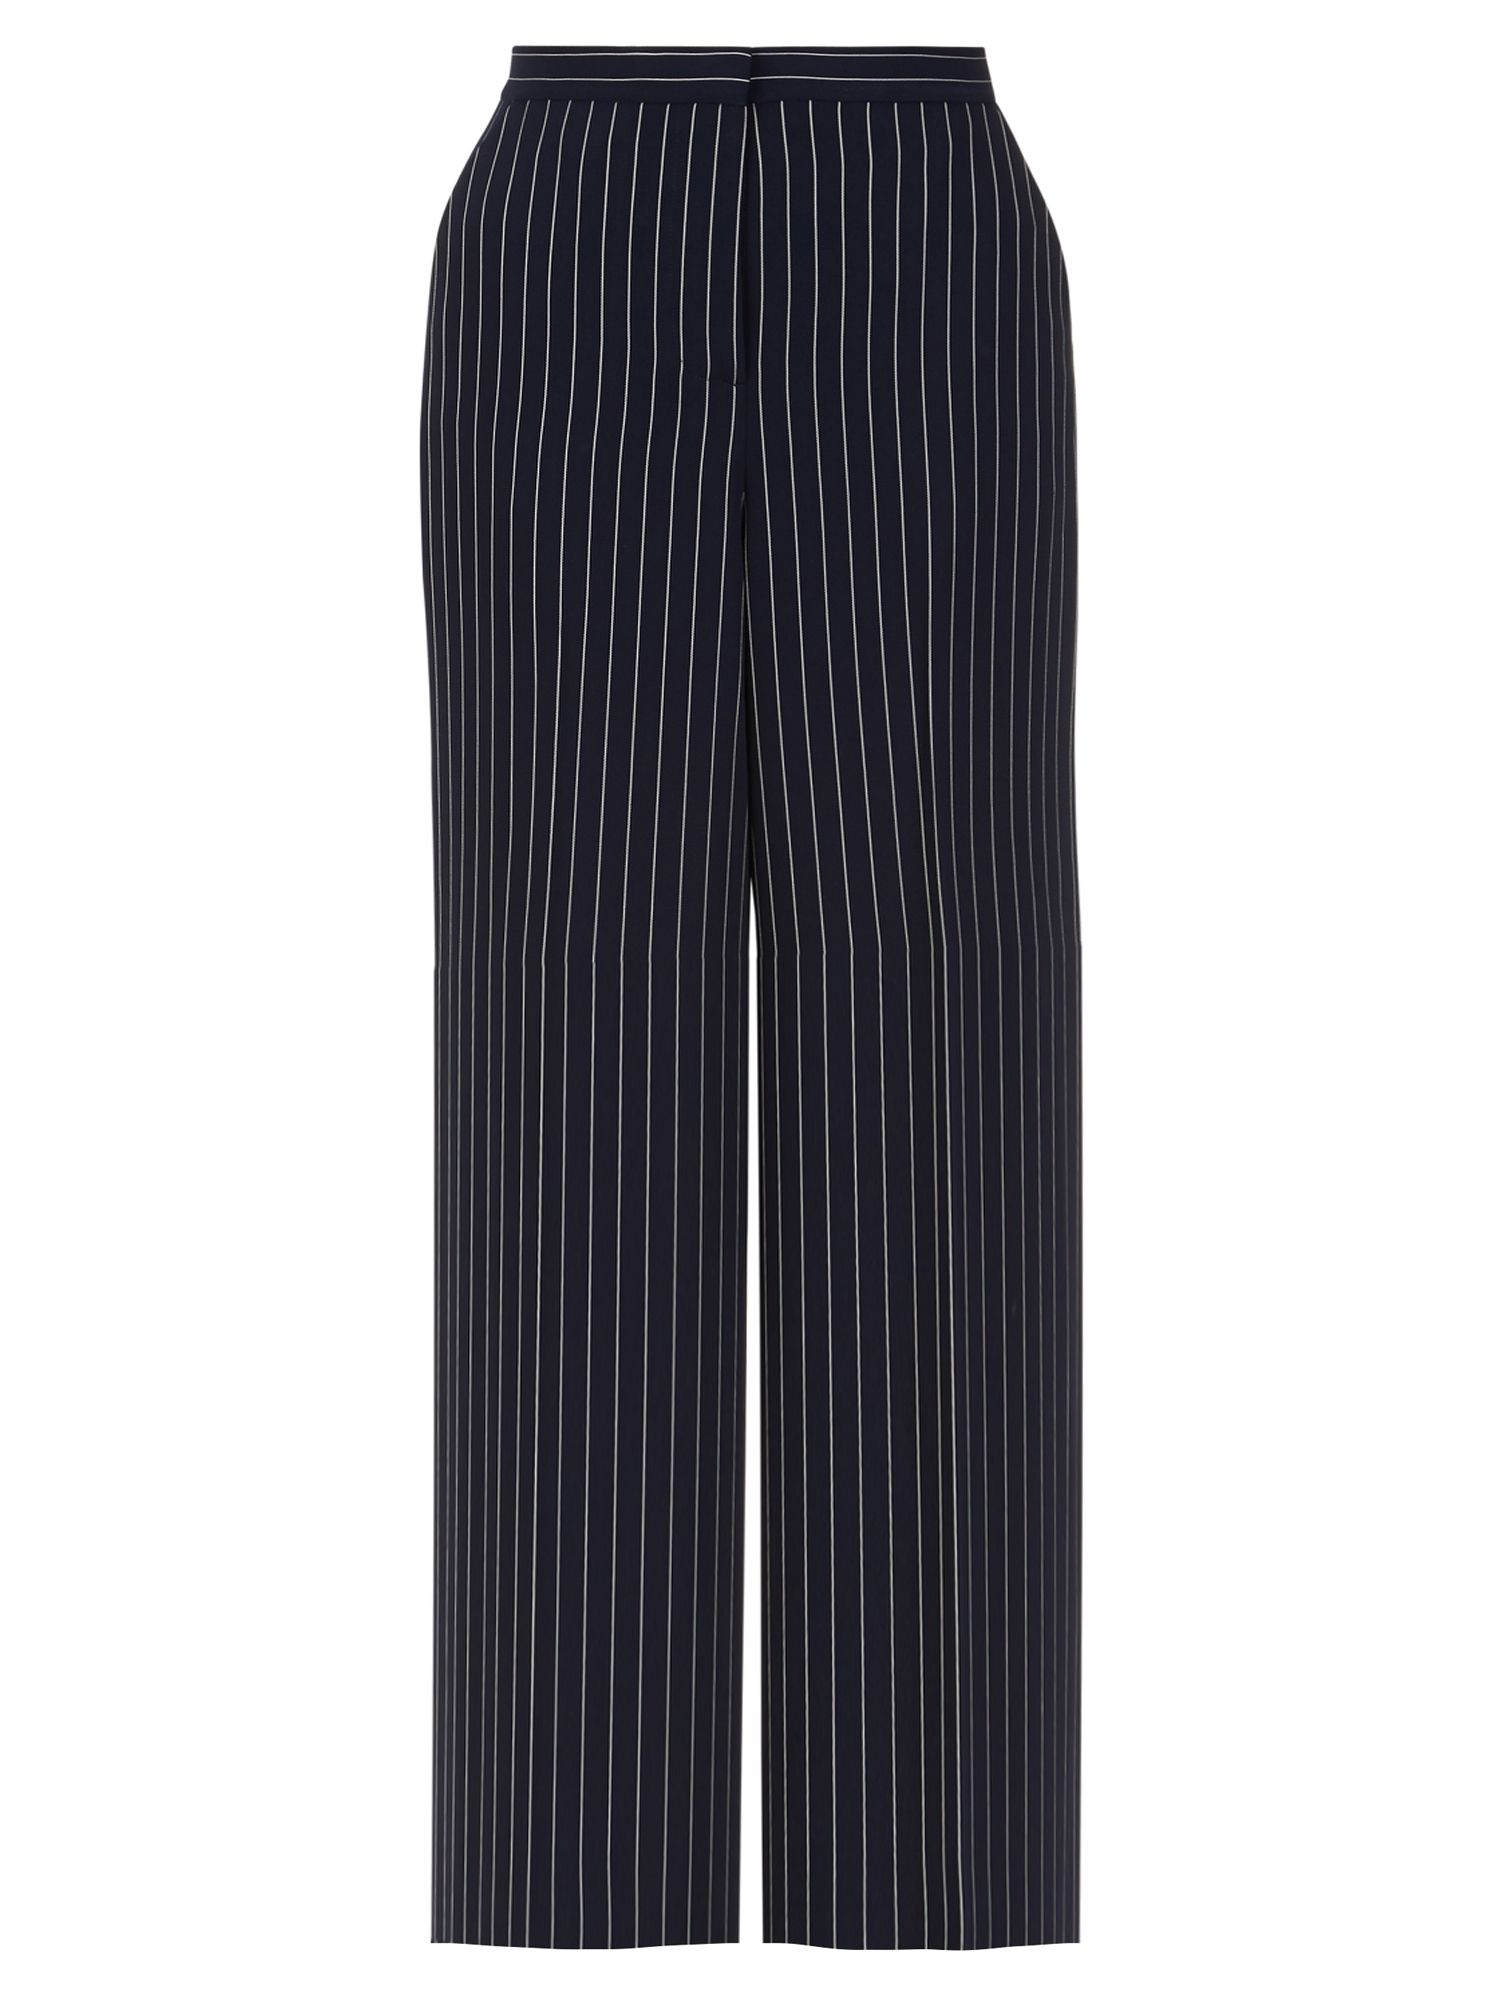 Hobbs Paige Trouser, Multi-Coloured